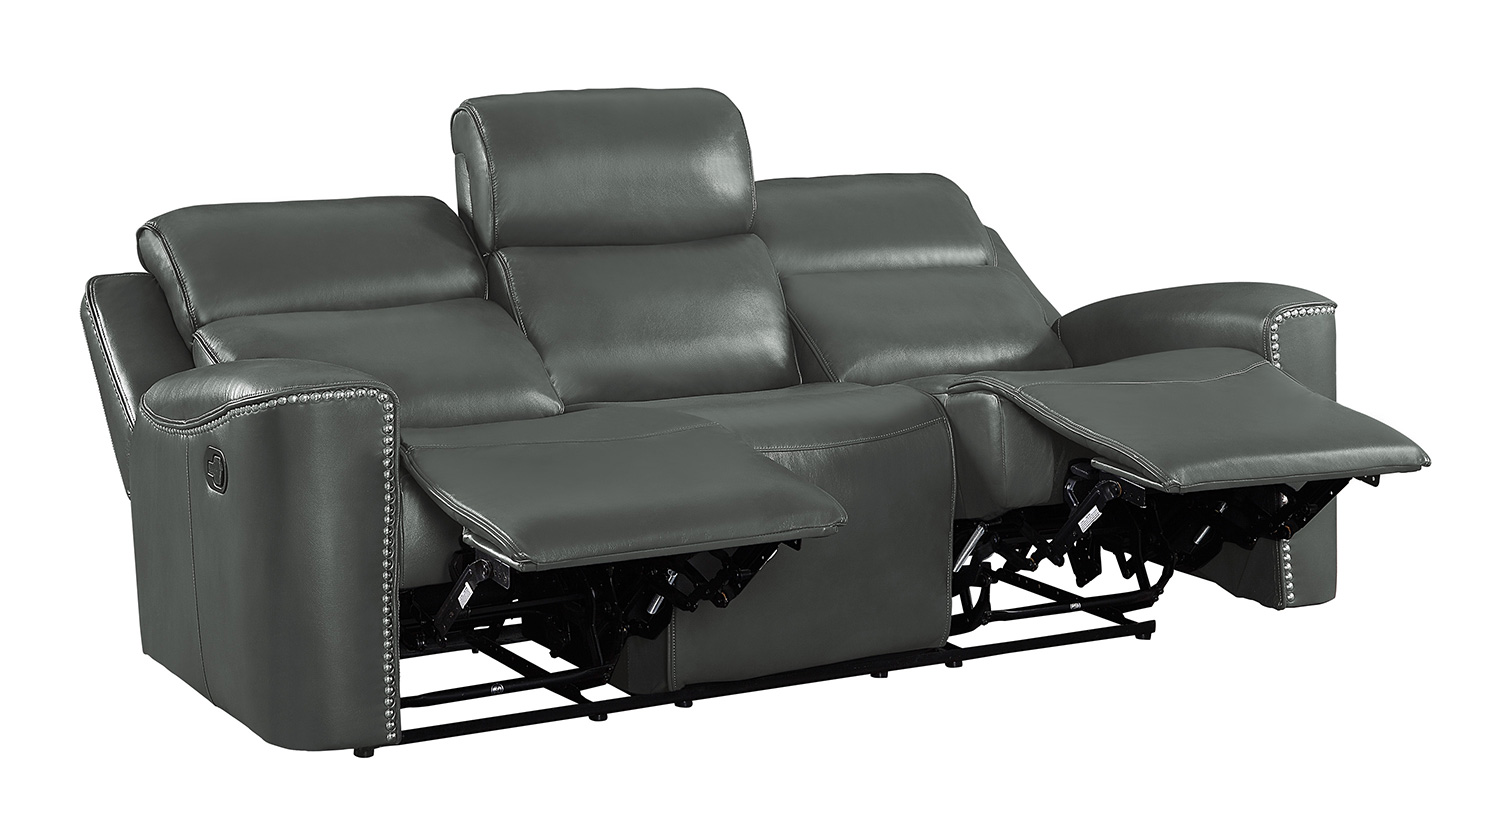 Homelegance Altair Double Reclining Sofa - Gray